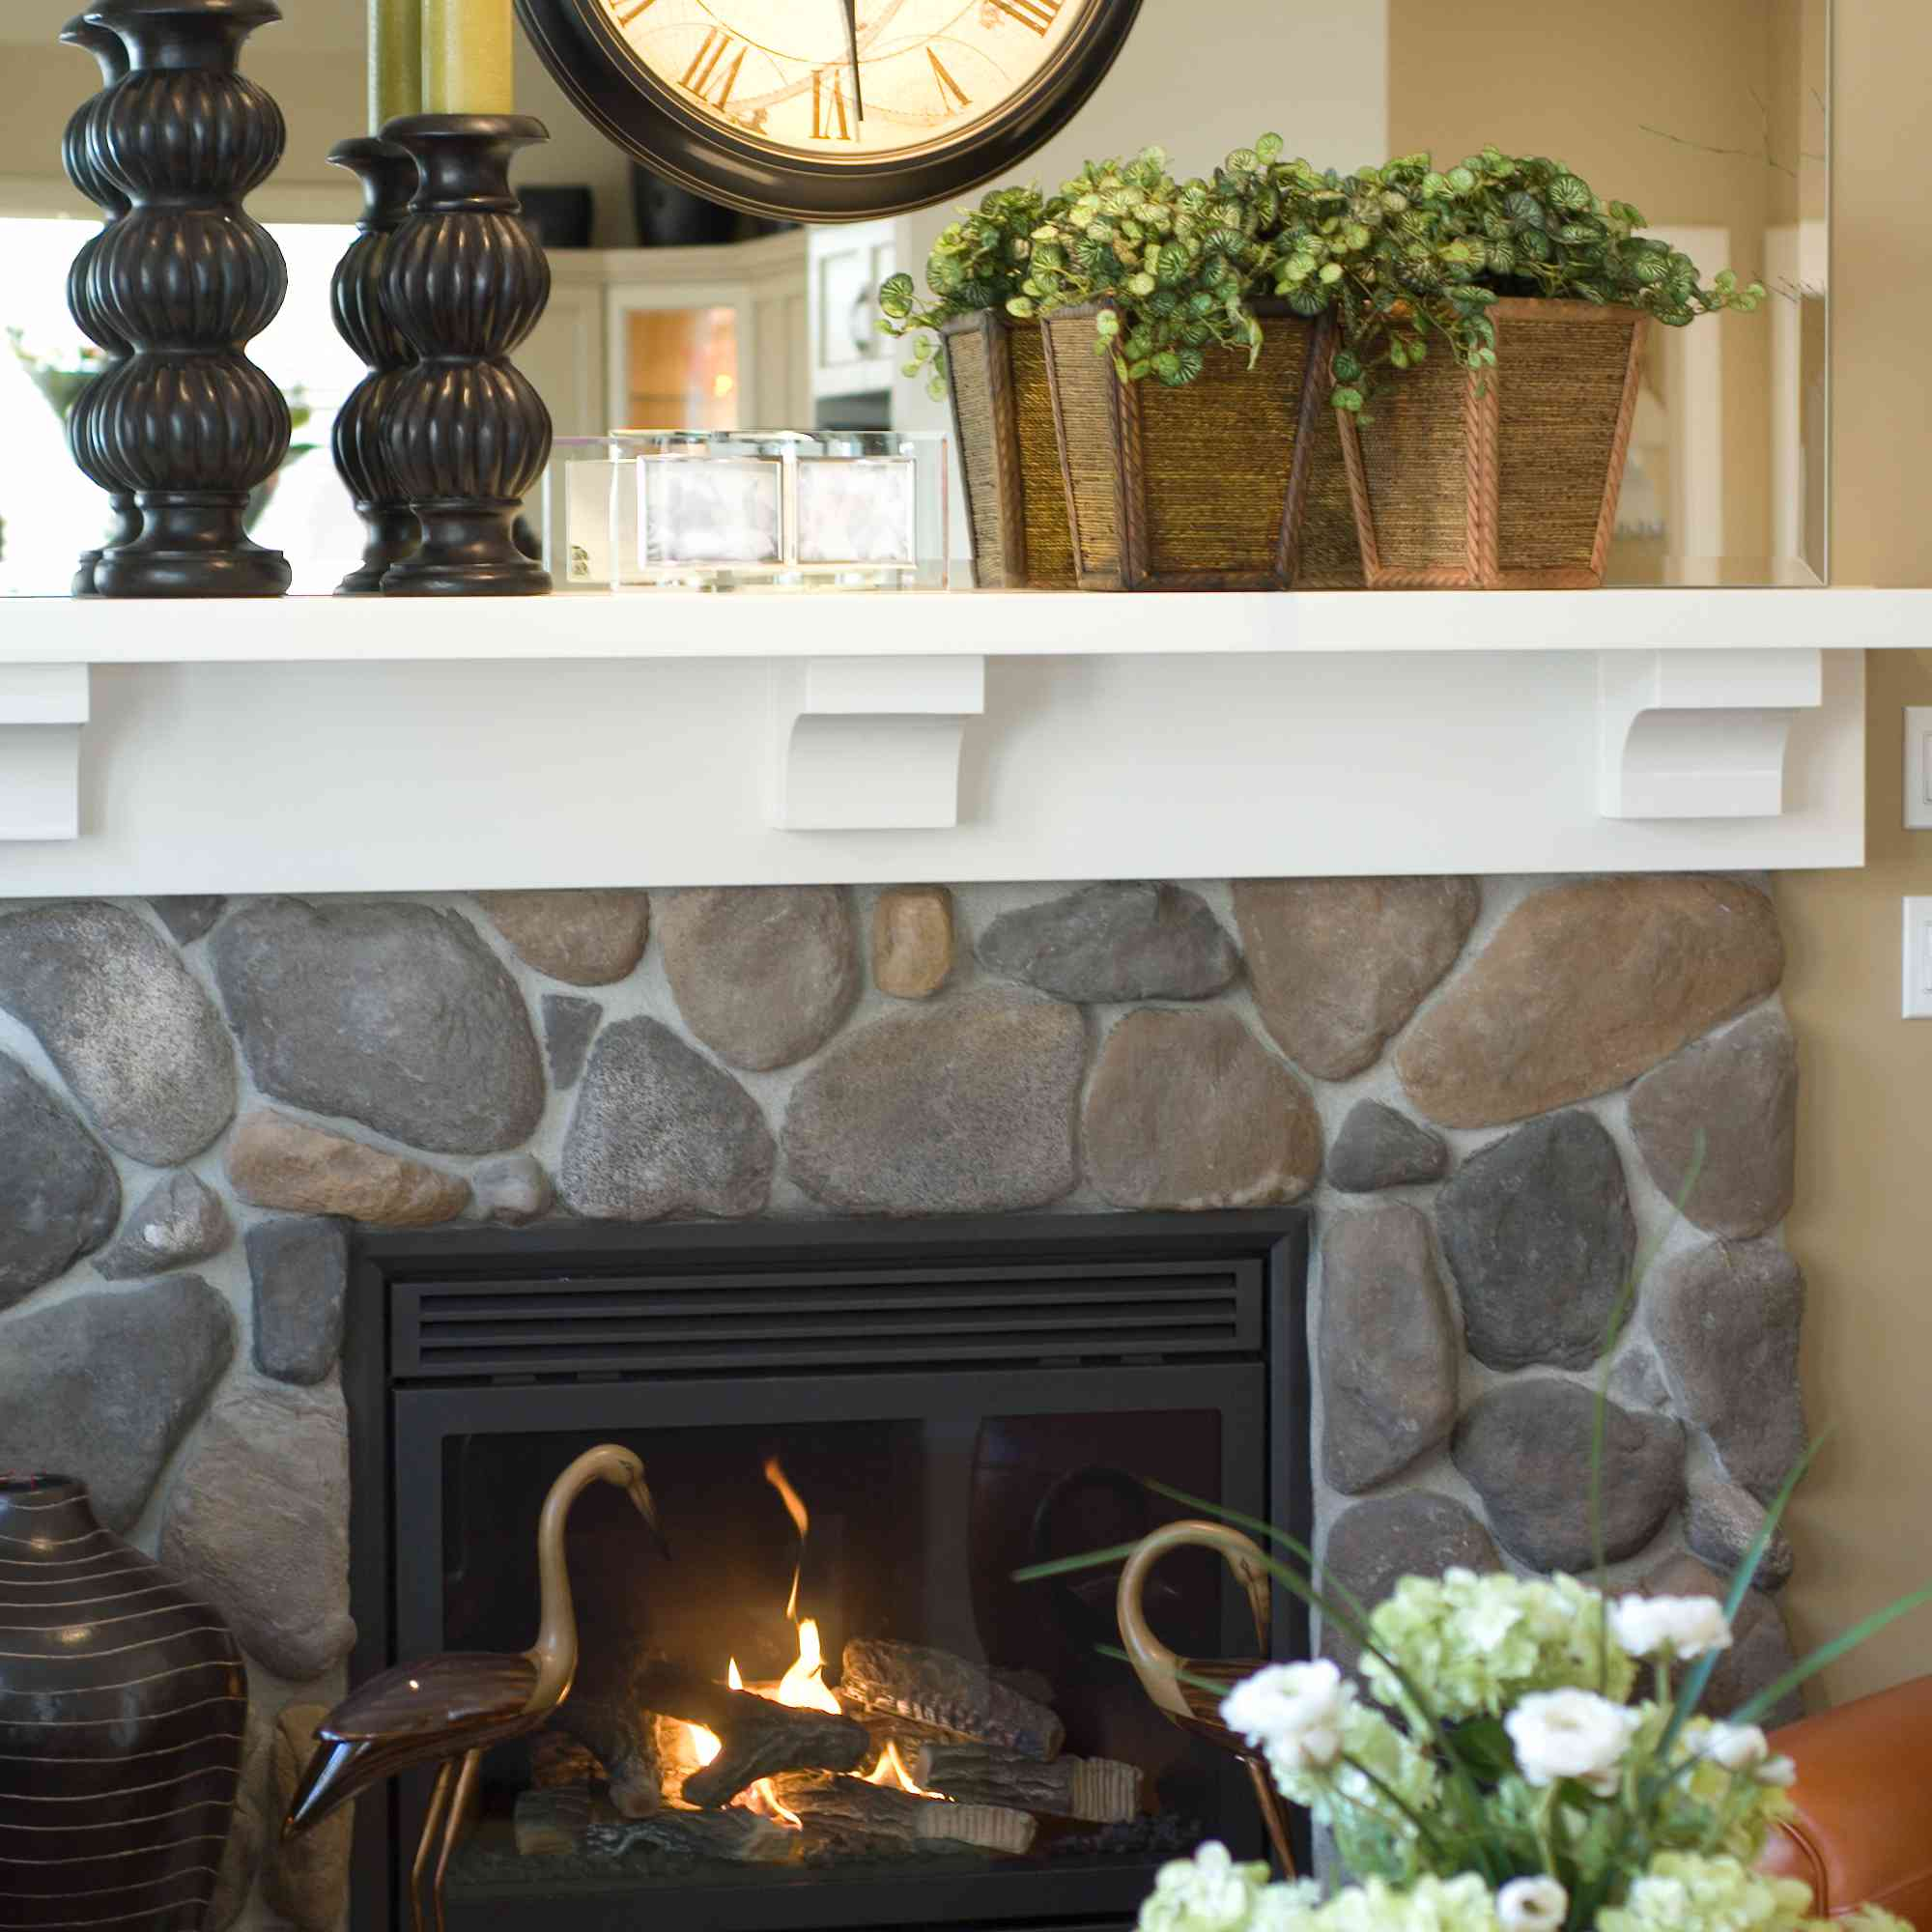 Mantel decor with clock and accessories